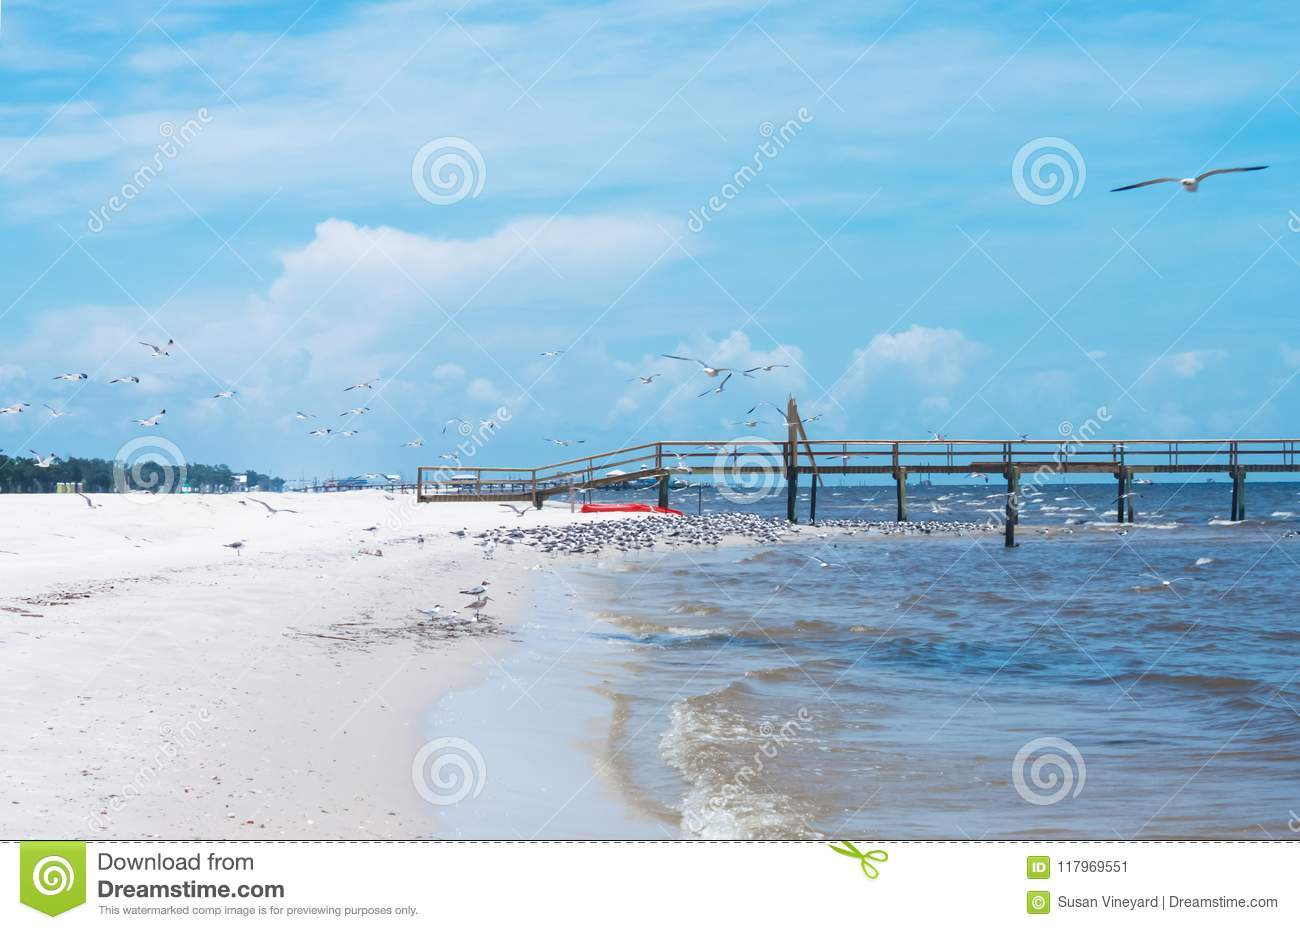 Seagulls swarming near a wooden pier in southern United States along the Gulf of Mexico